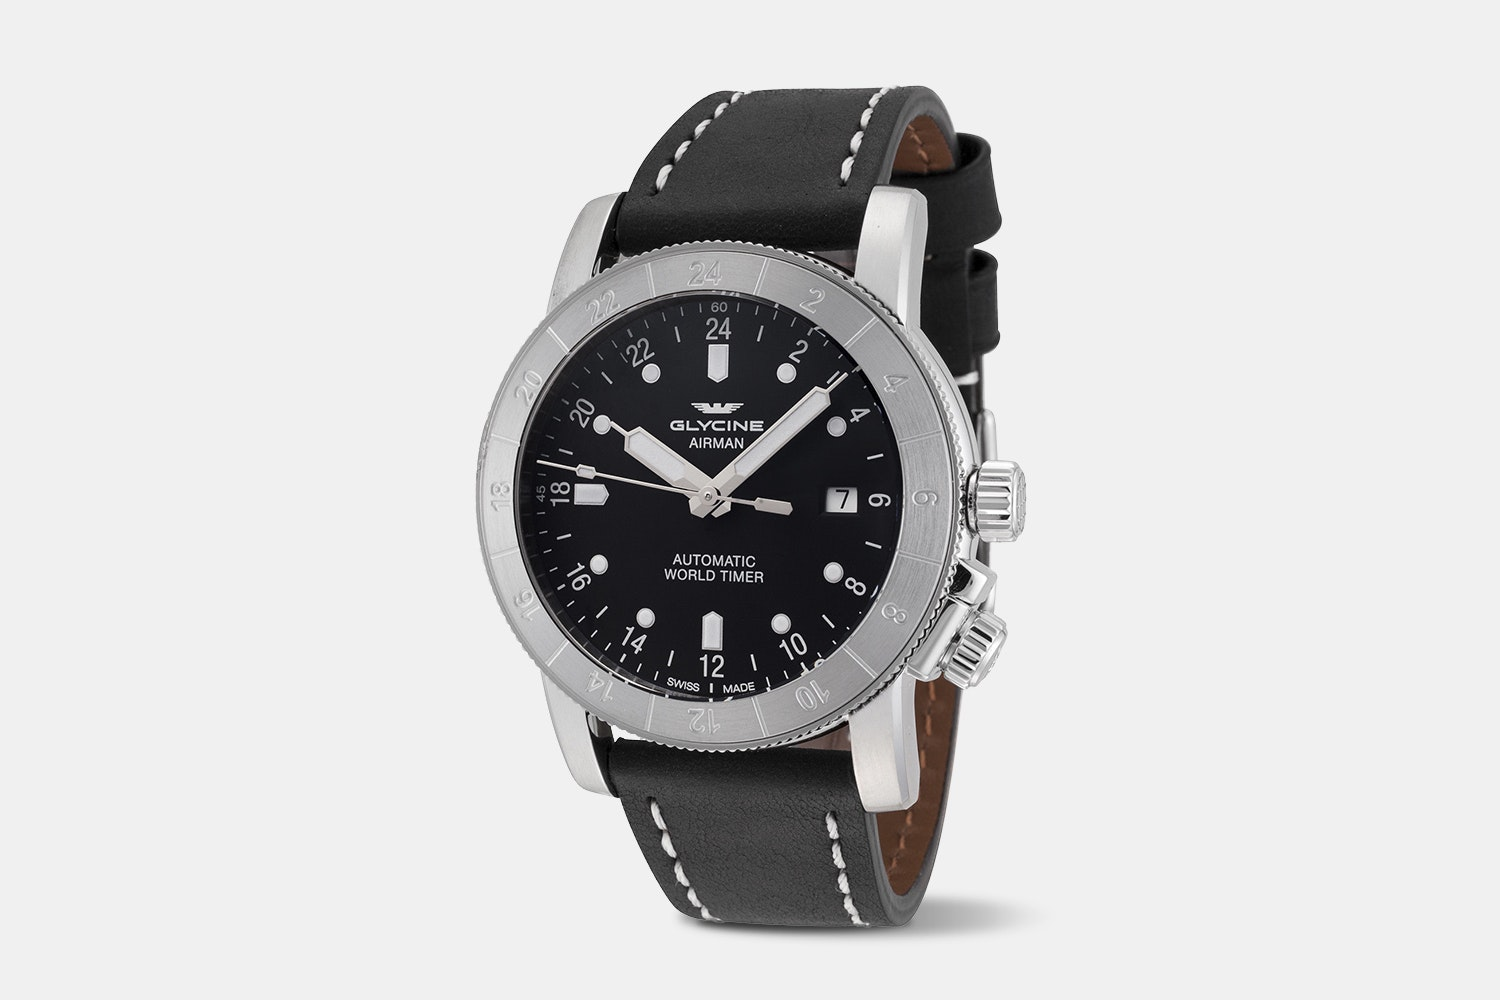 Airman 42 - GL0140 | Black Dial, Black Leather Strap